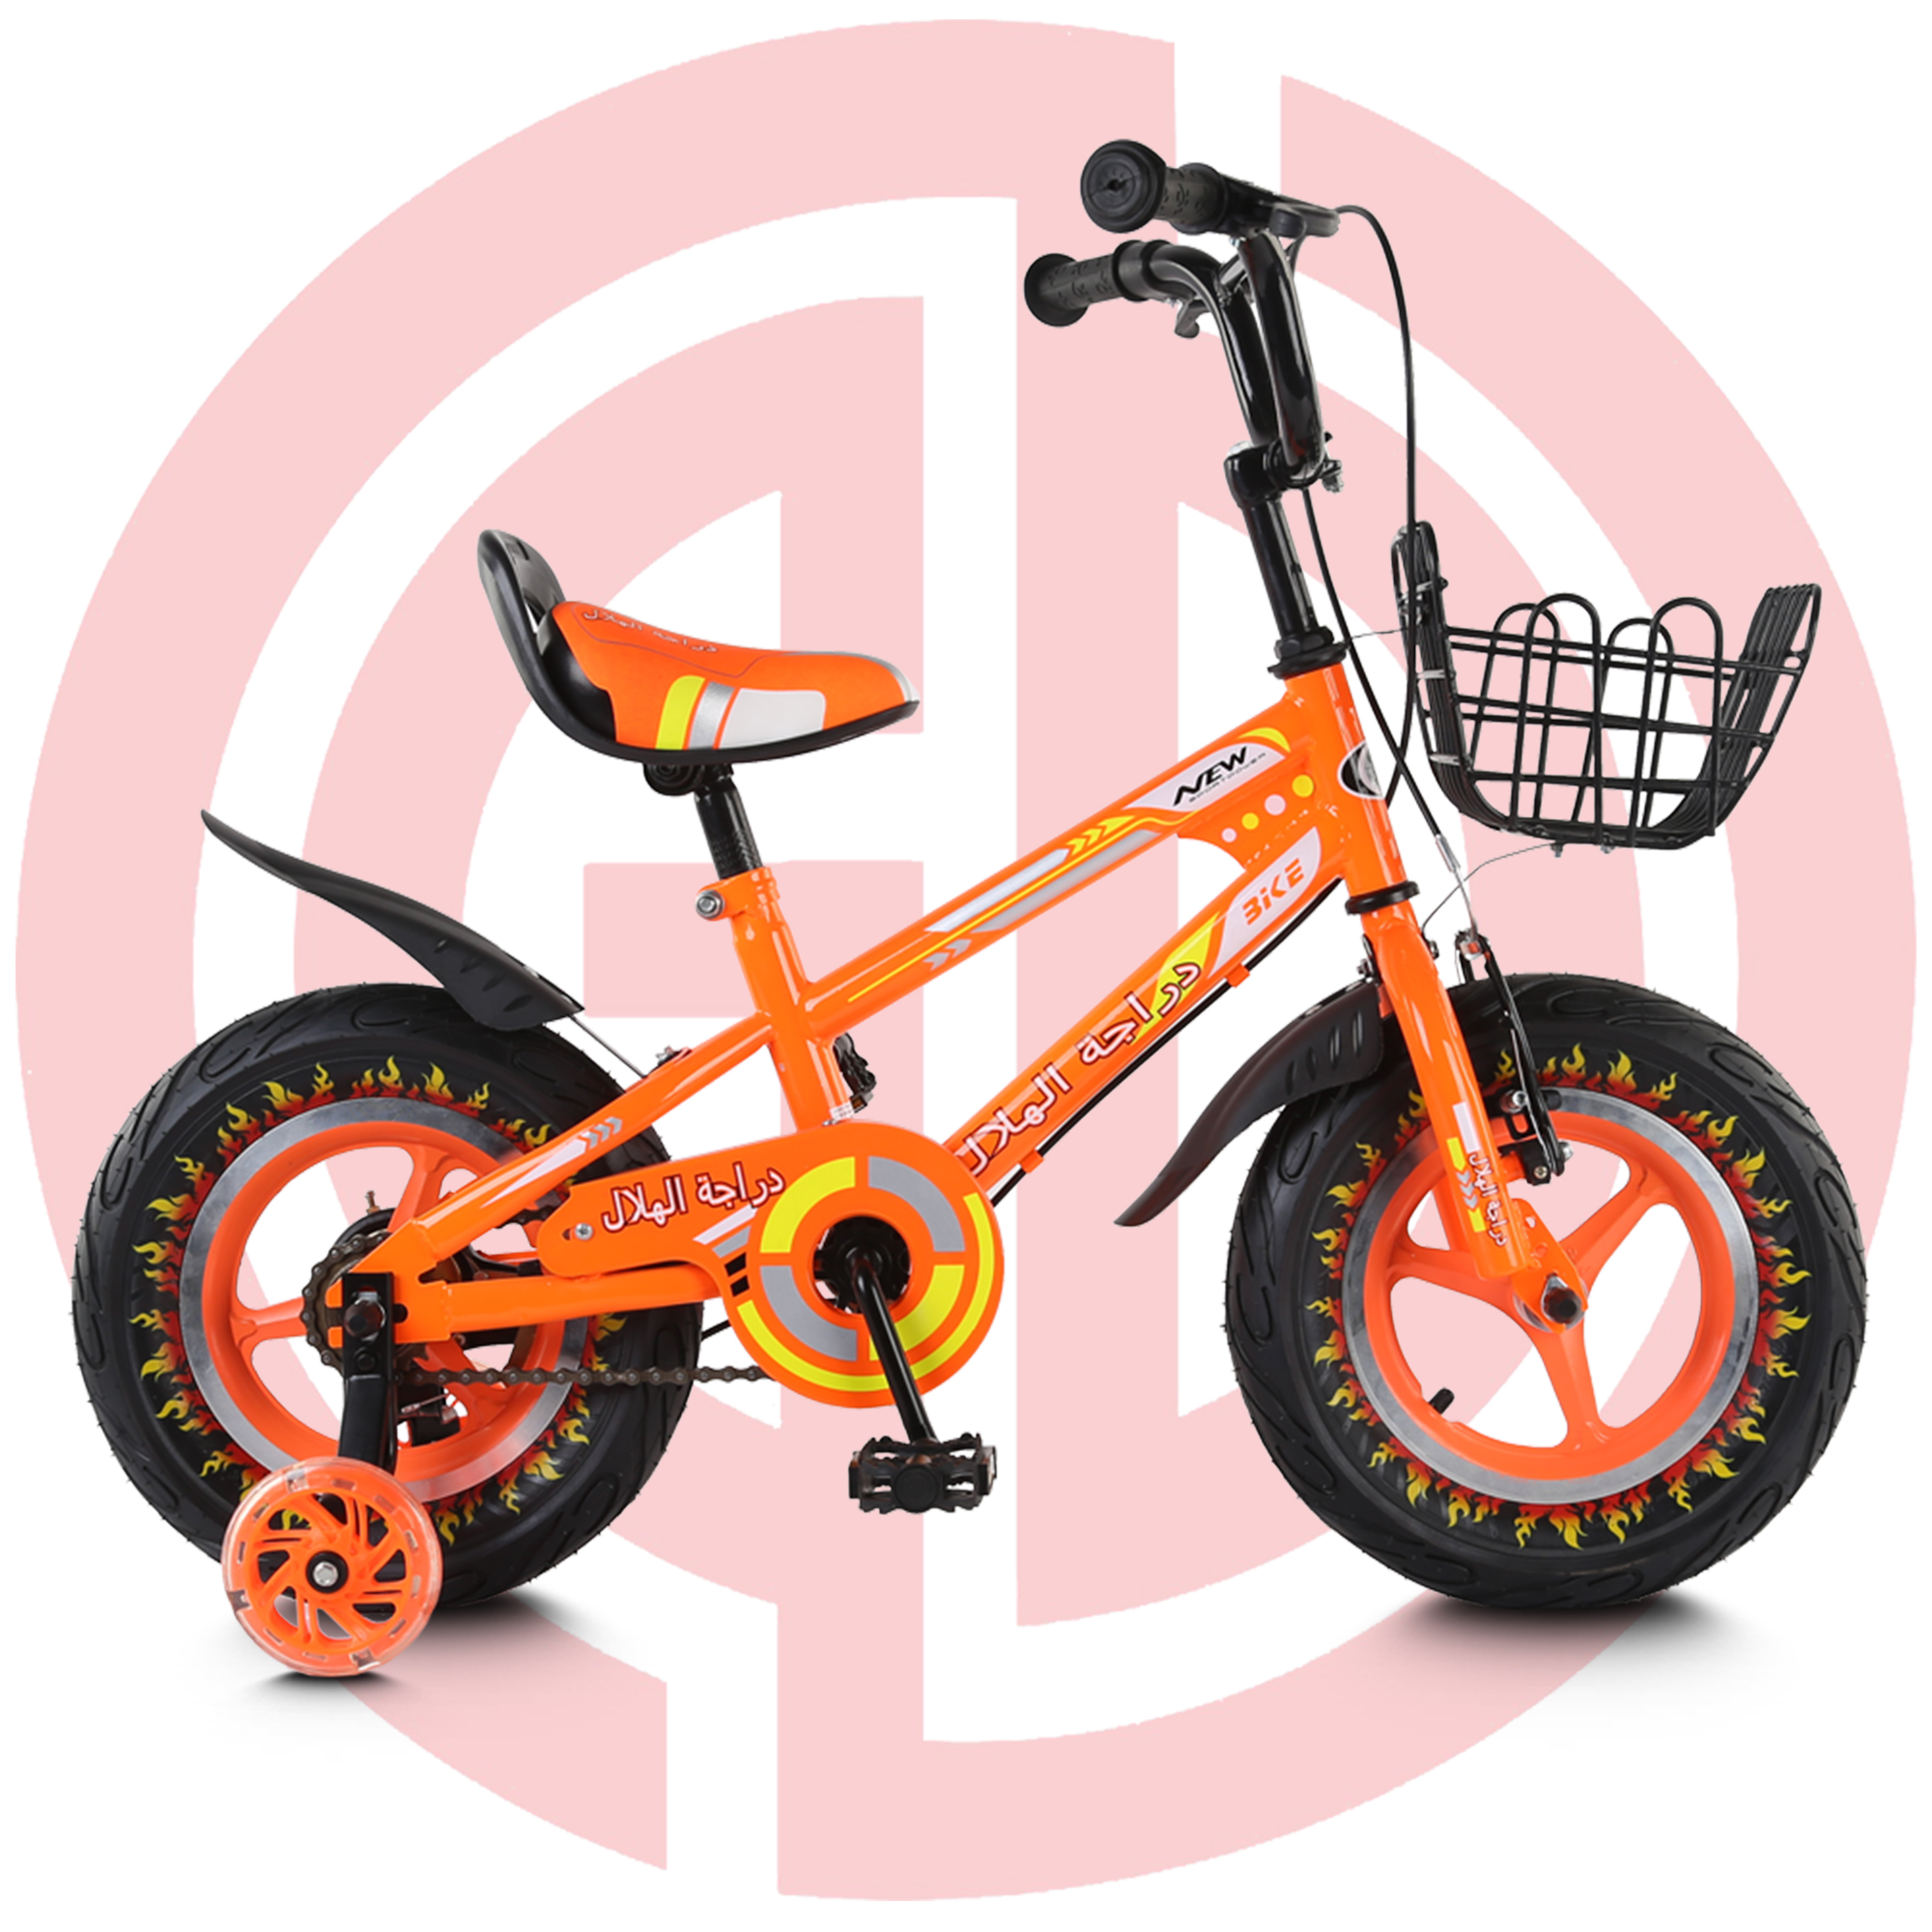 GD-KB-006: Children orange kids bicycle, cool kids bike, metal frame, training wheel Featured Image